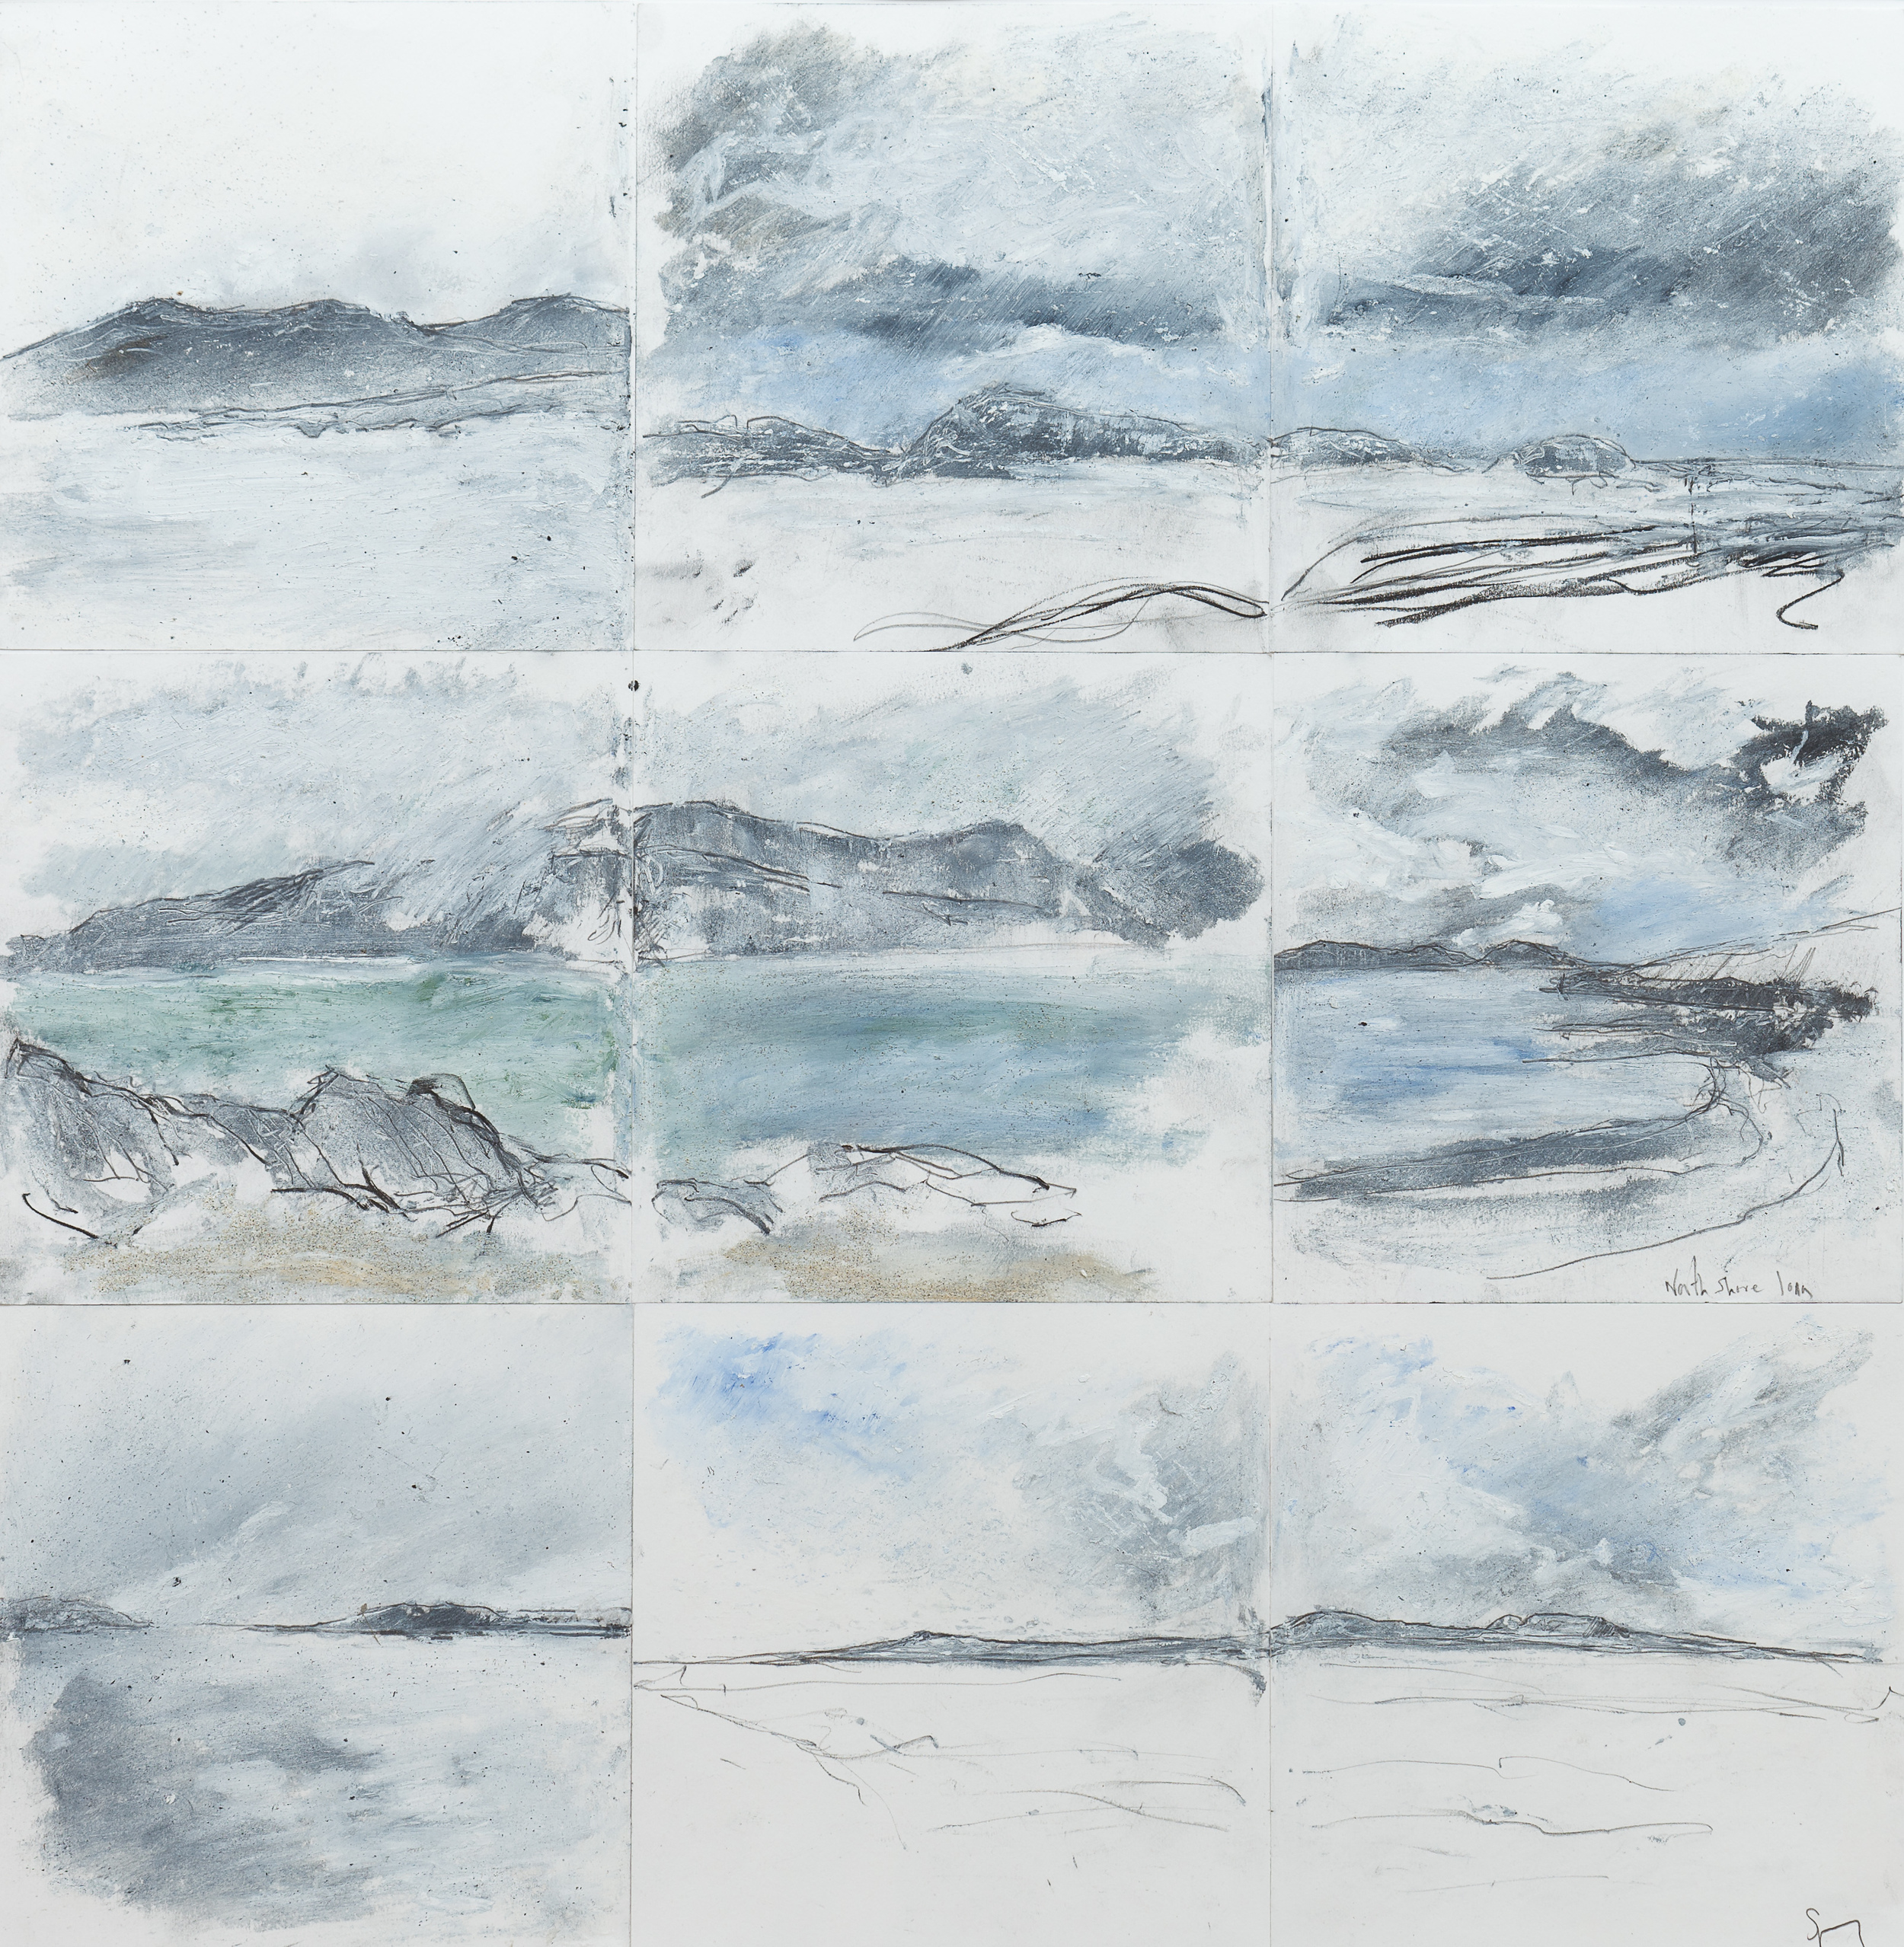 Iona Drawing montage Mixed media on paper 60x60cm